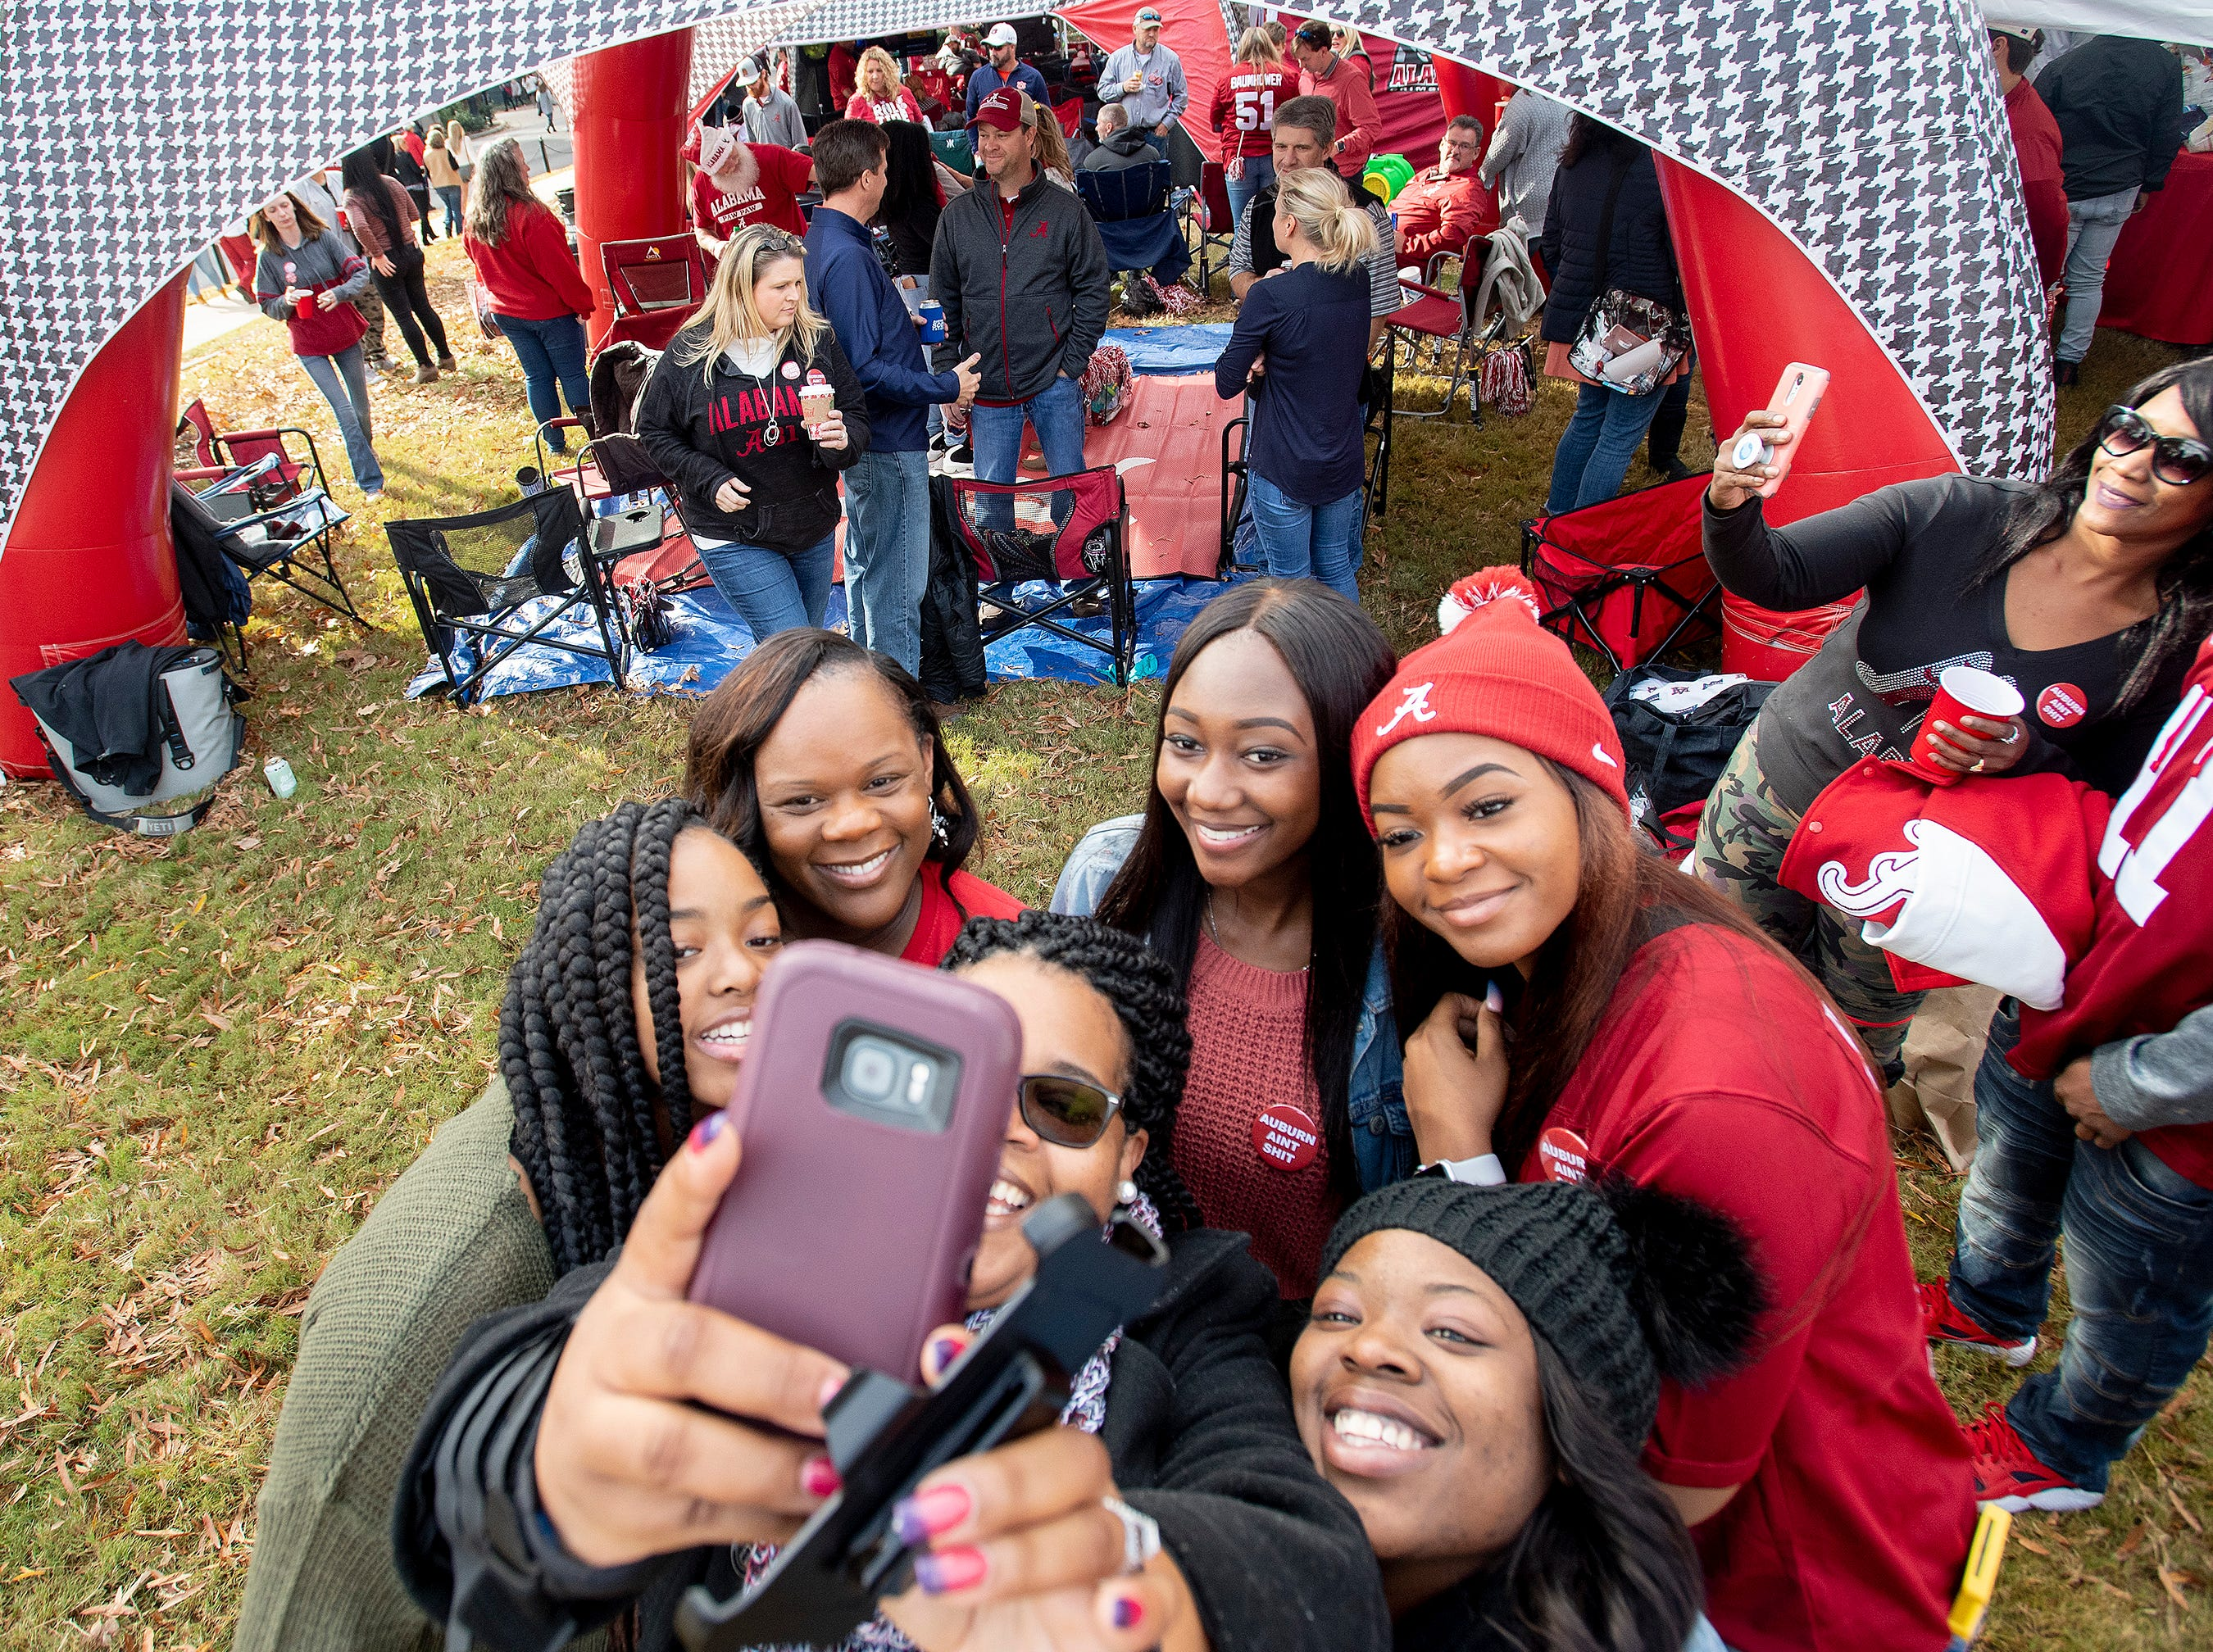 The Ruggs family does selfies as they tailgate with the Wilson family before the Iron Bowl in Tuscaloosa, Ala., on Saturday November 24, 2018.